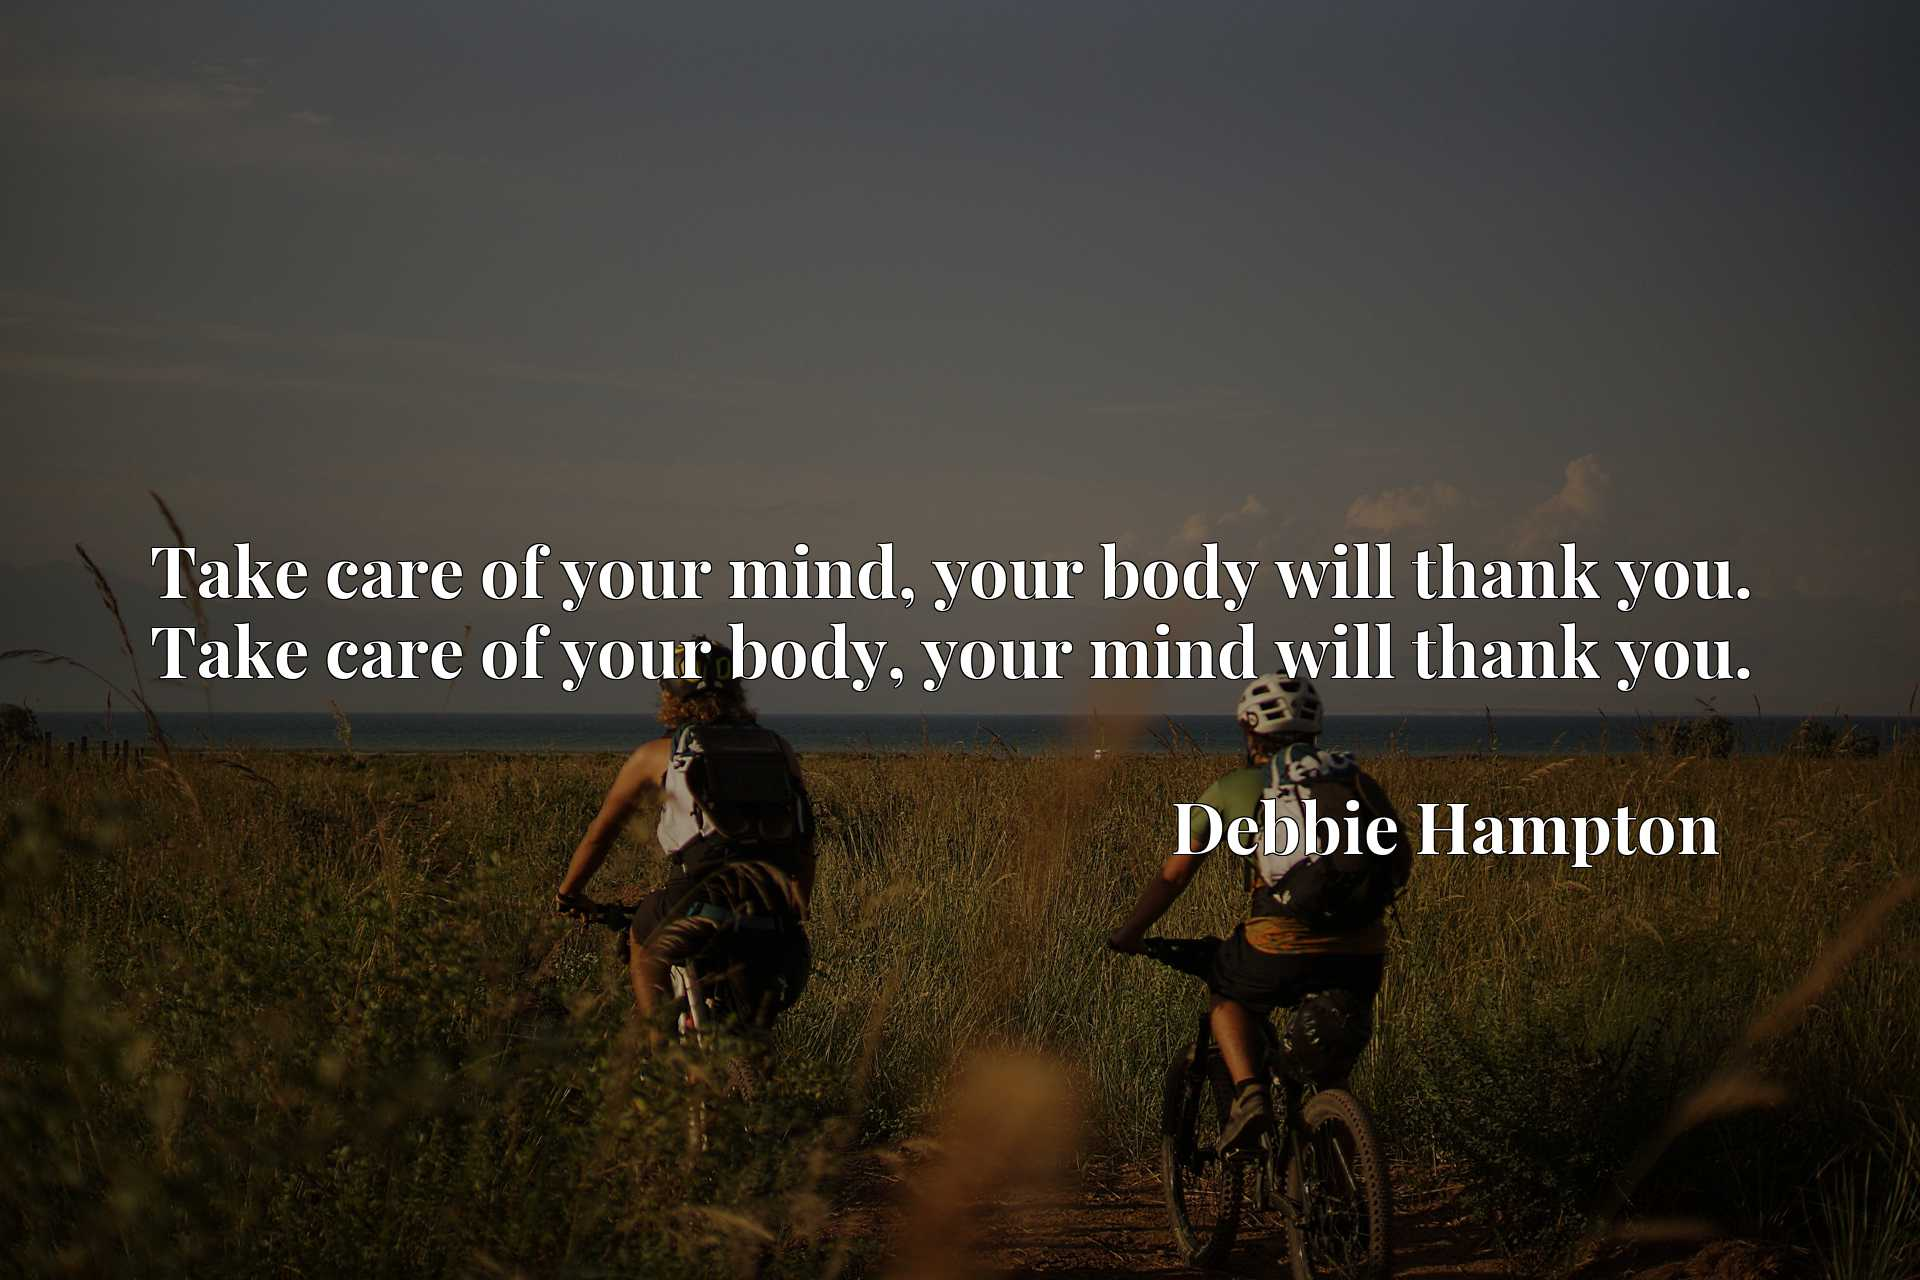 Take care of your mind, your body will thank you. Take care of your body, your mind will thank you.